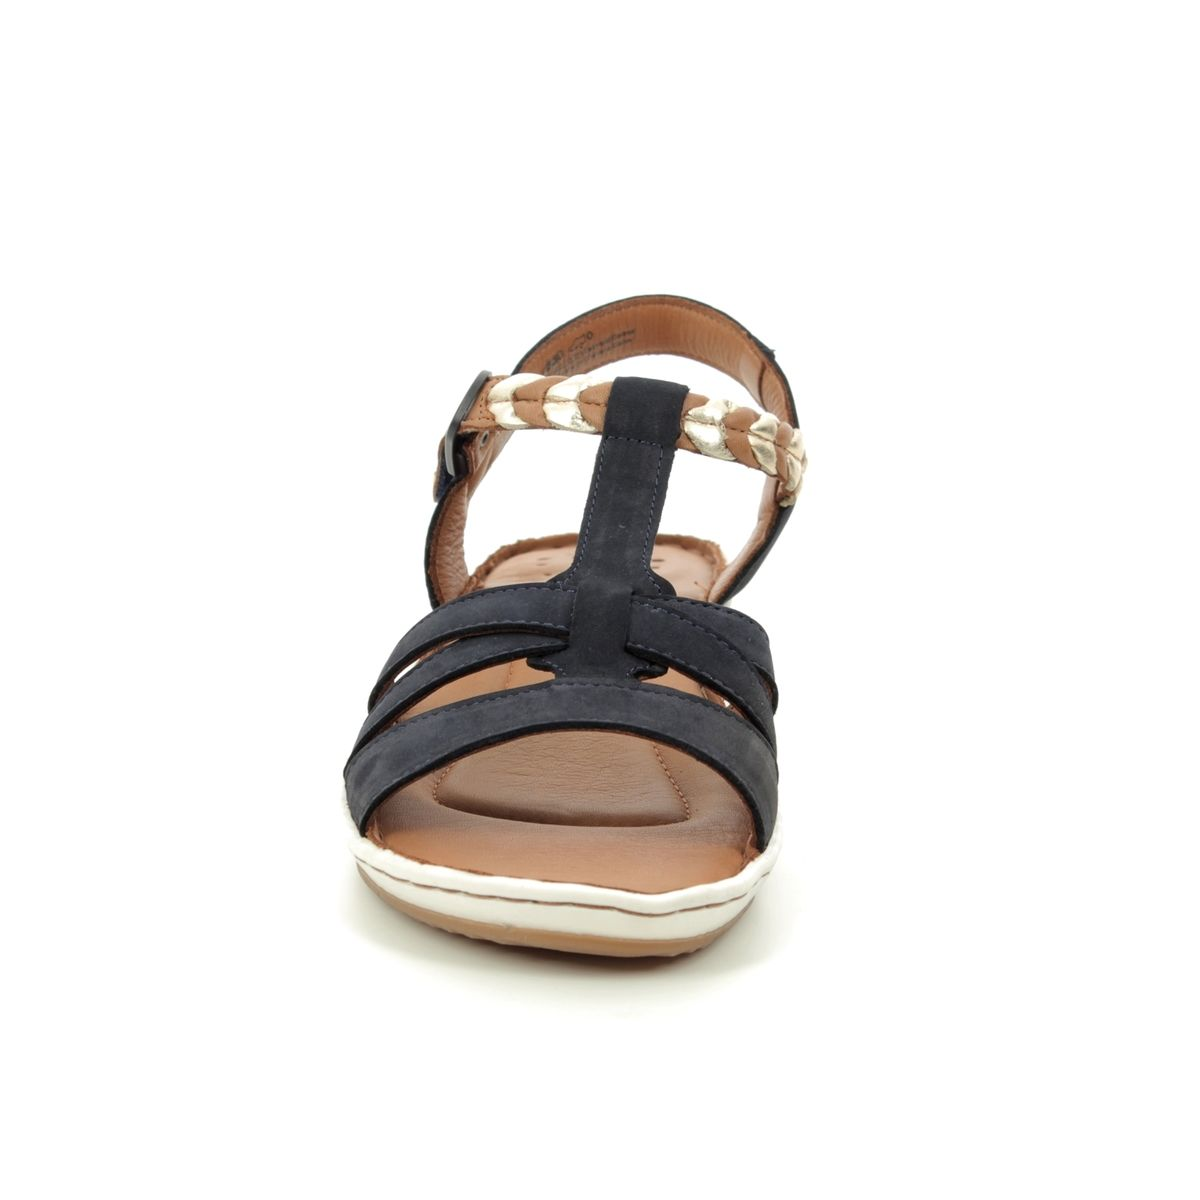 890 Sandals Salka 28603 Navy 22 Leather Tamaris jAR45L